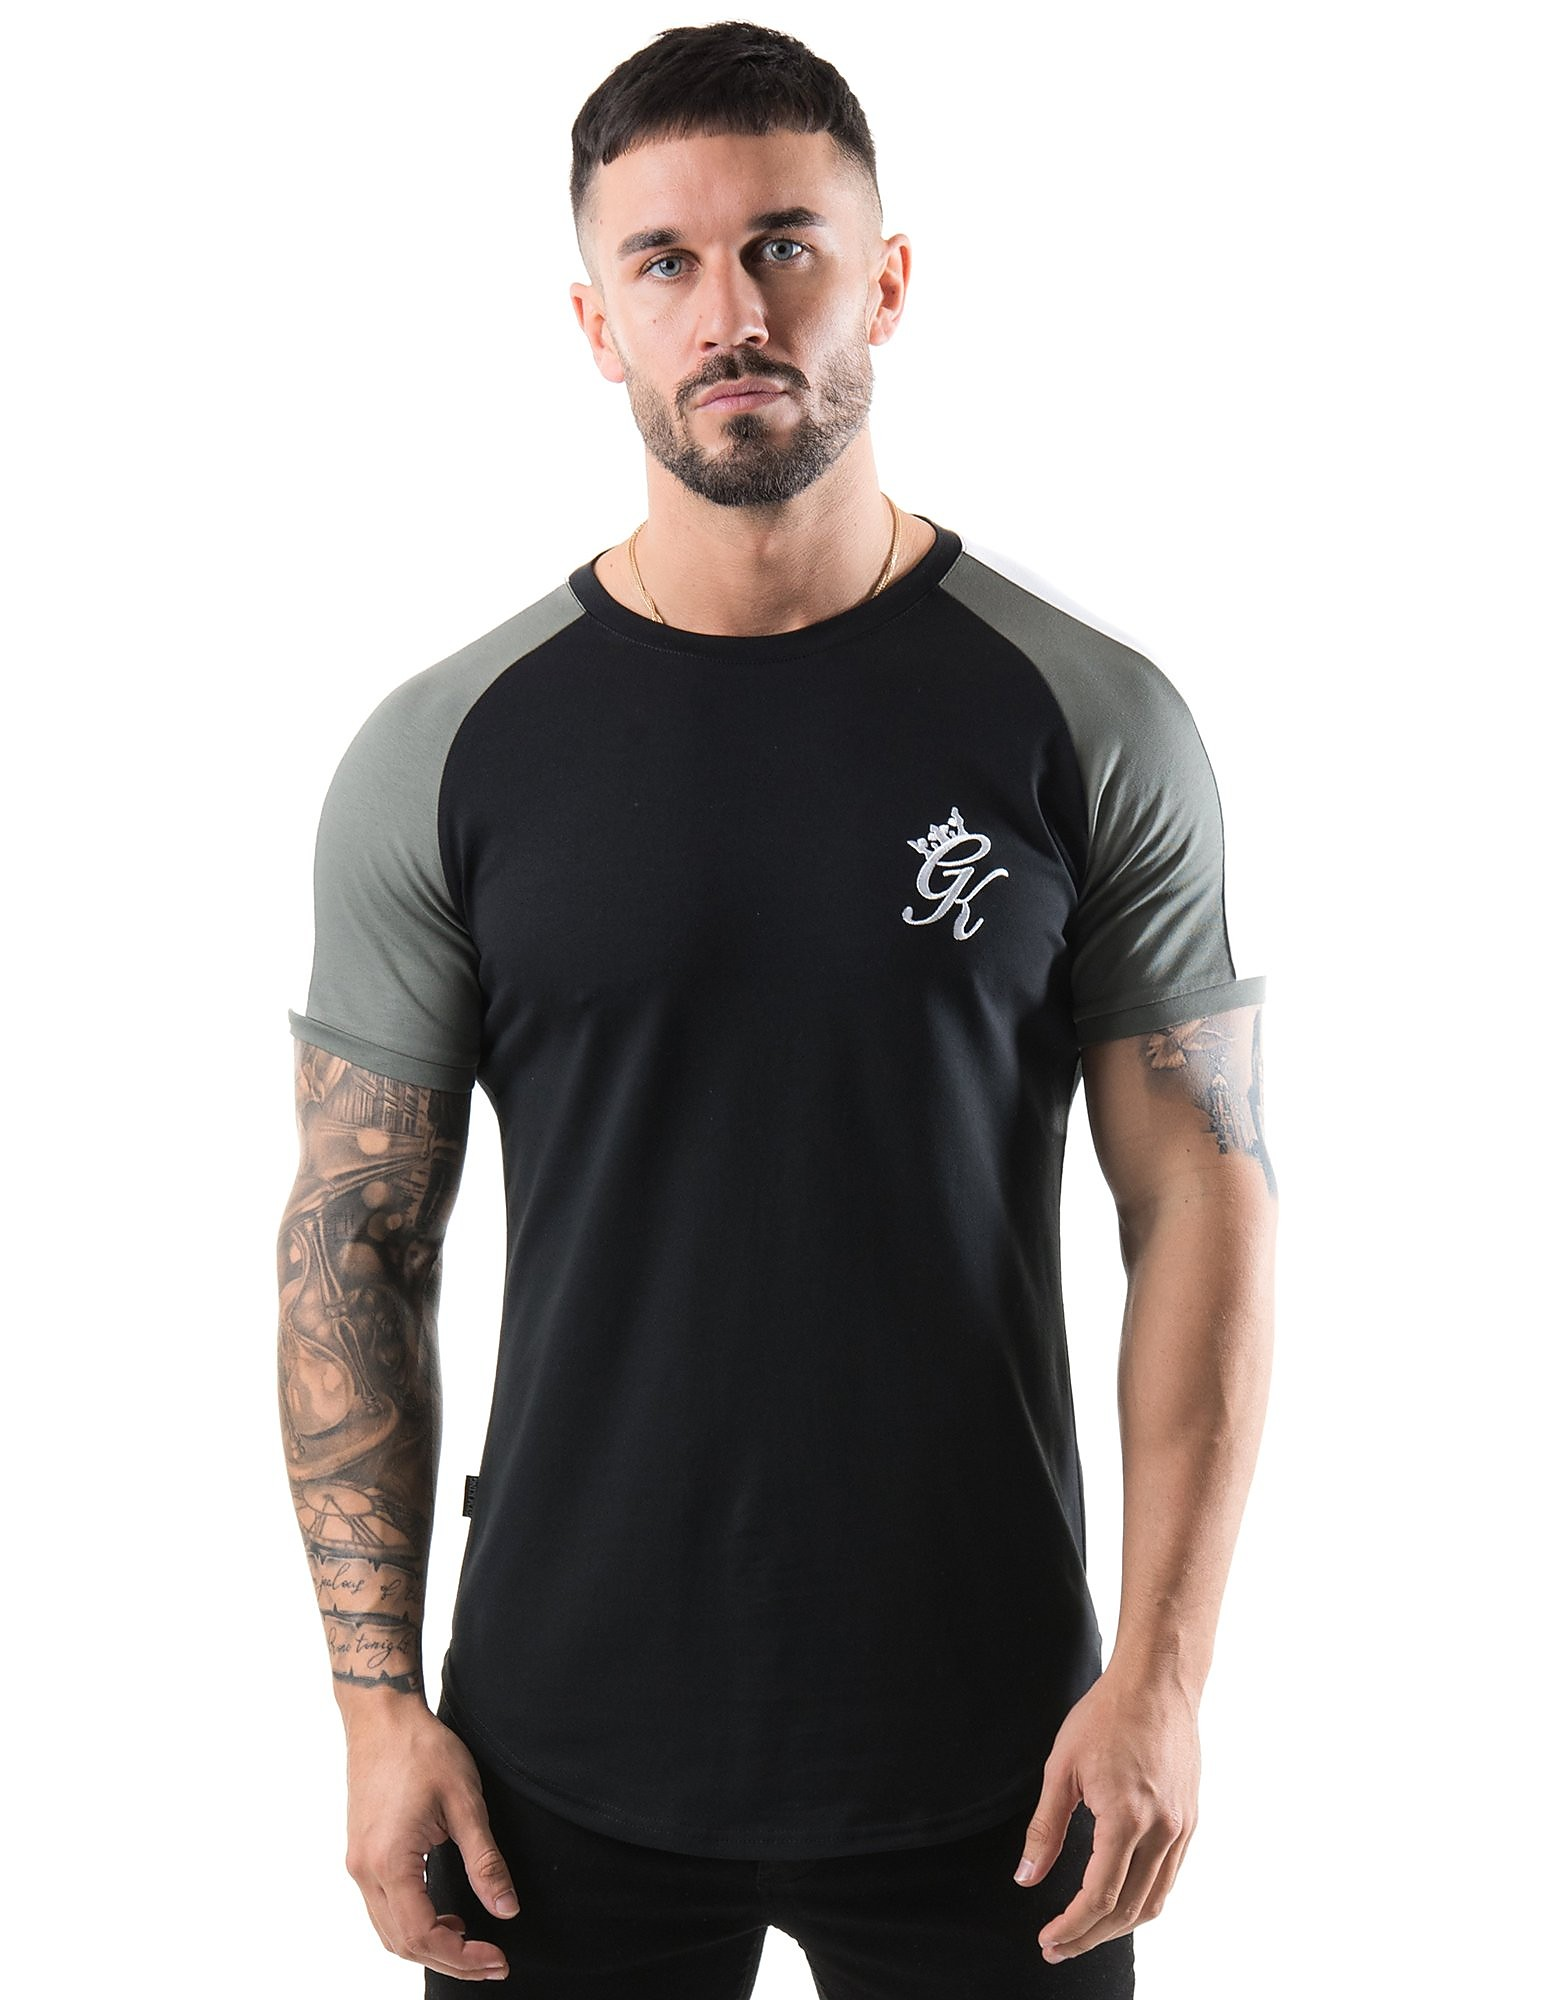 Gym King Retro T-Shirt